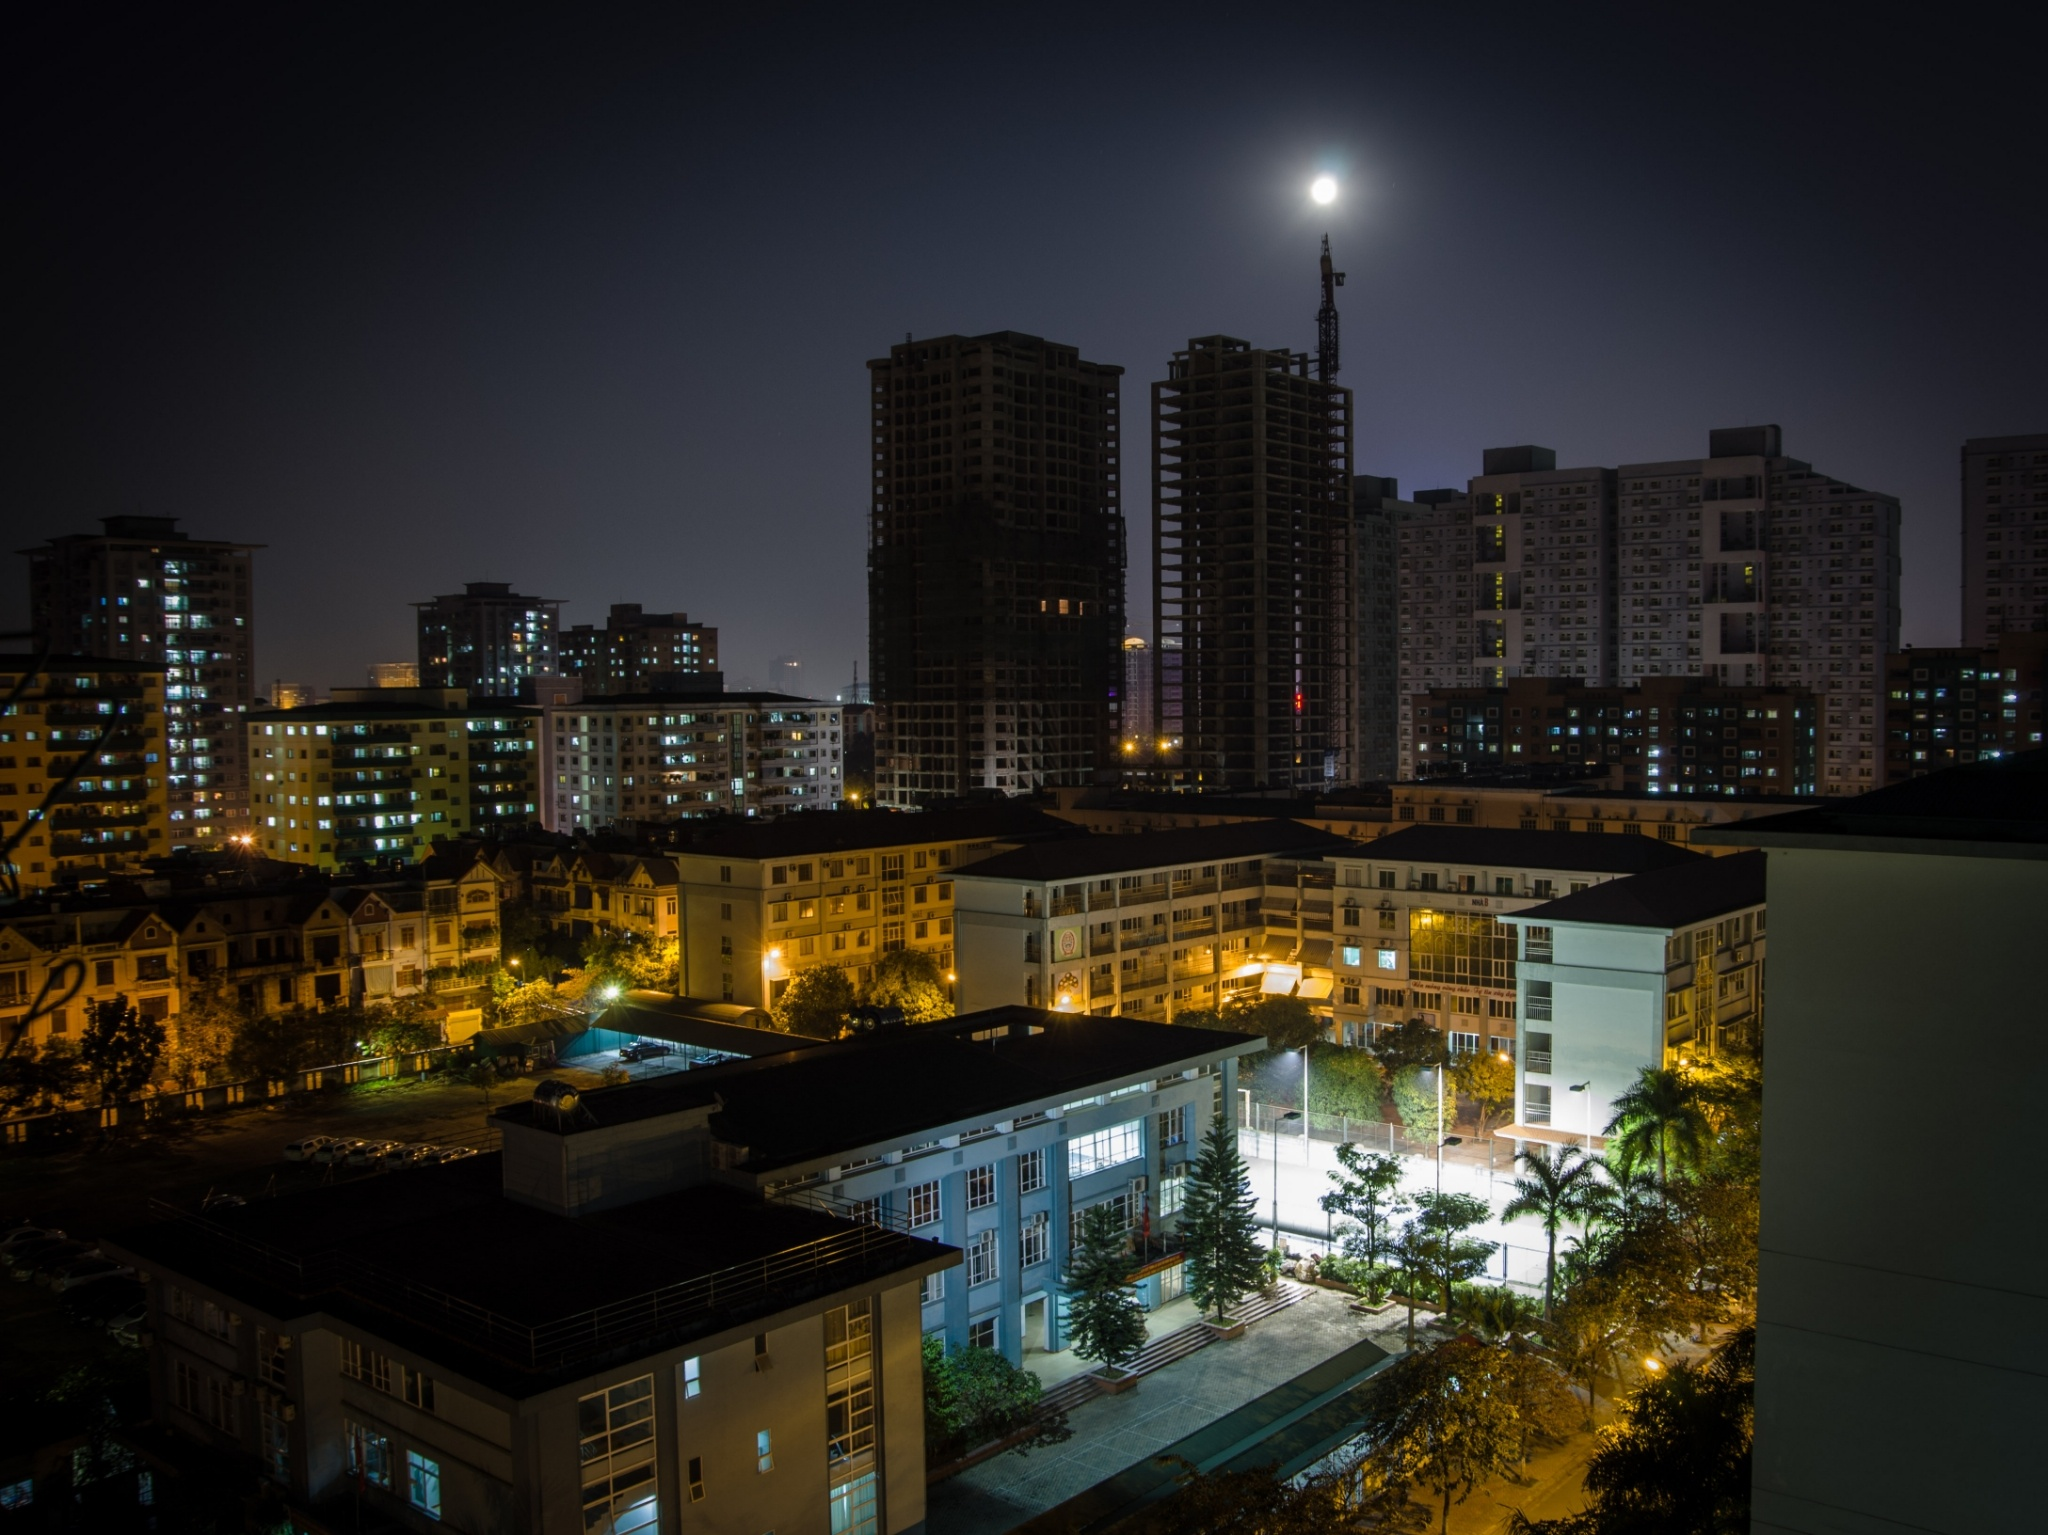 Full moon view from my balcony by Cuong NM